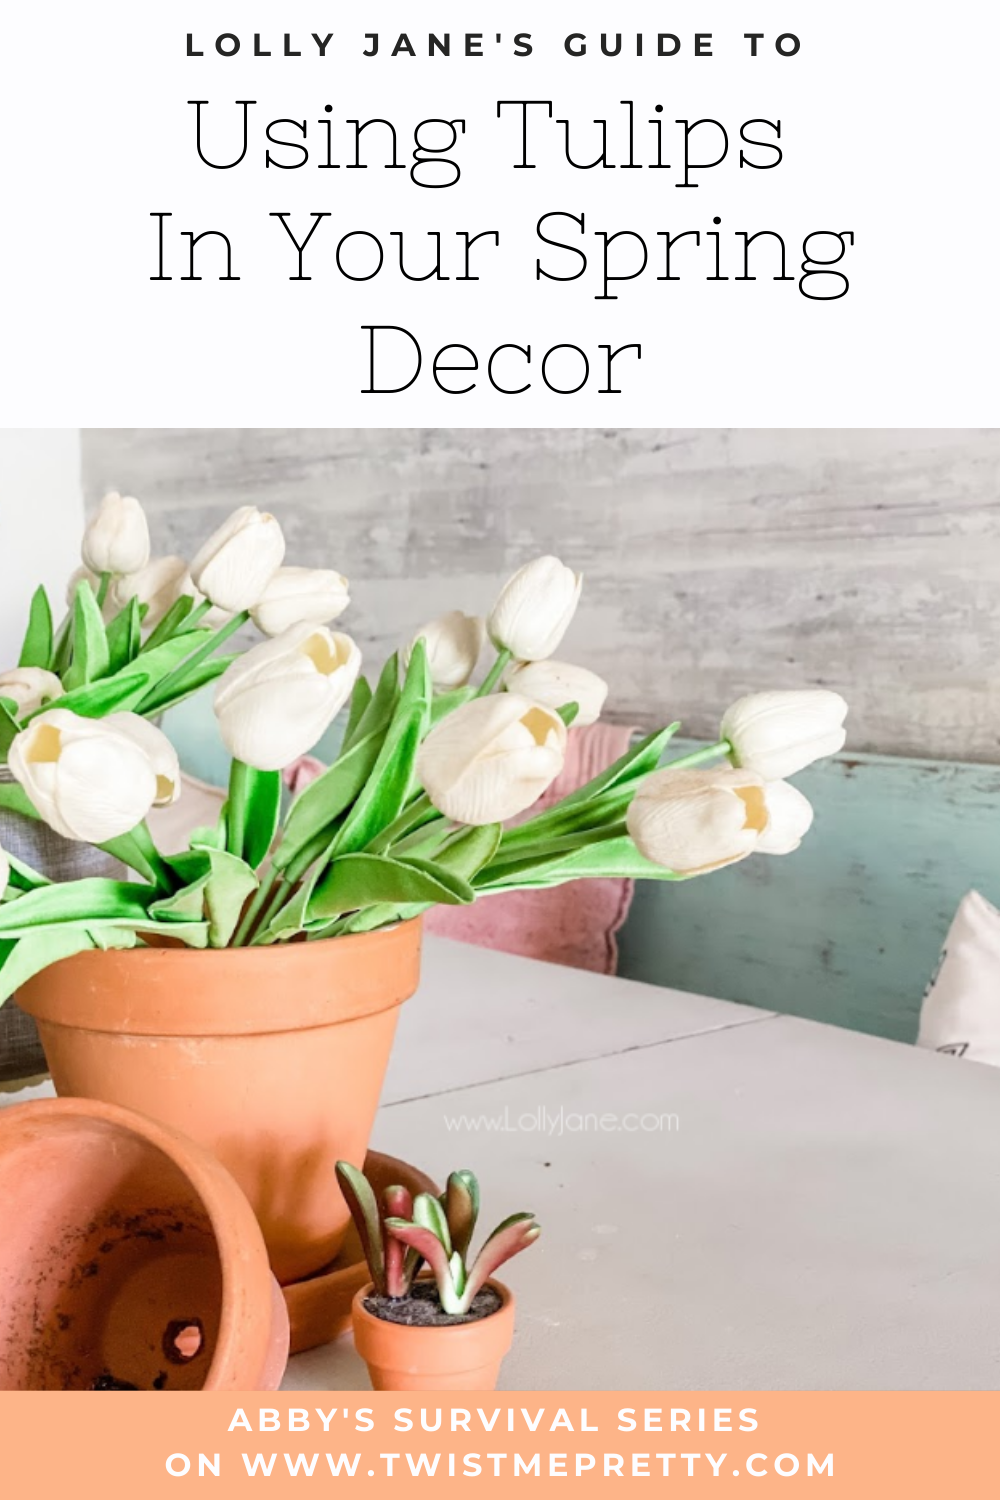 Abby's Survival Series: Using Tulips in Your Spring Decor www.TwistMePretty.com